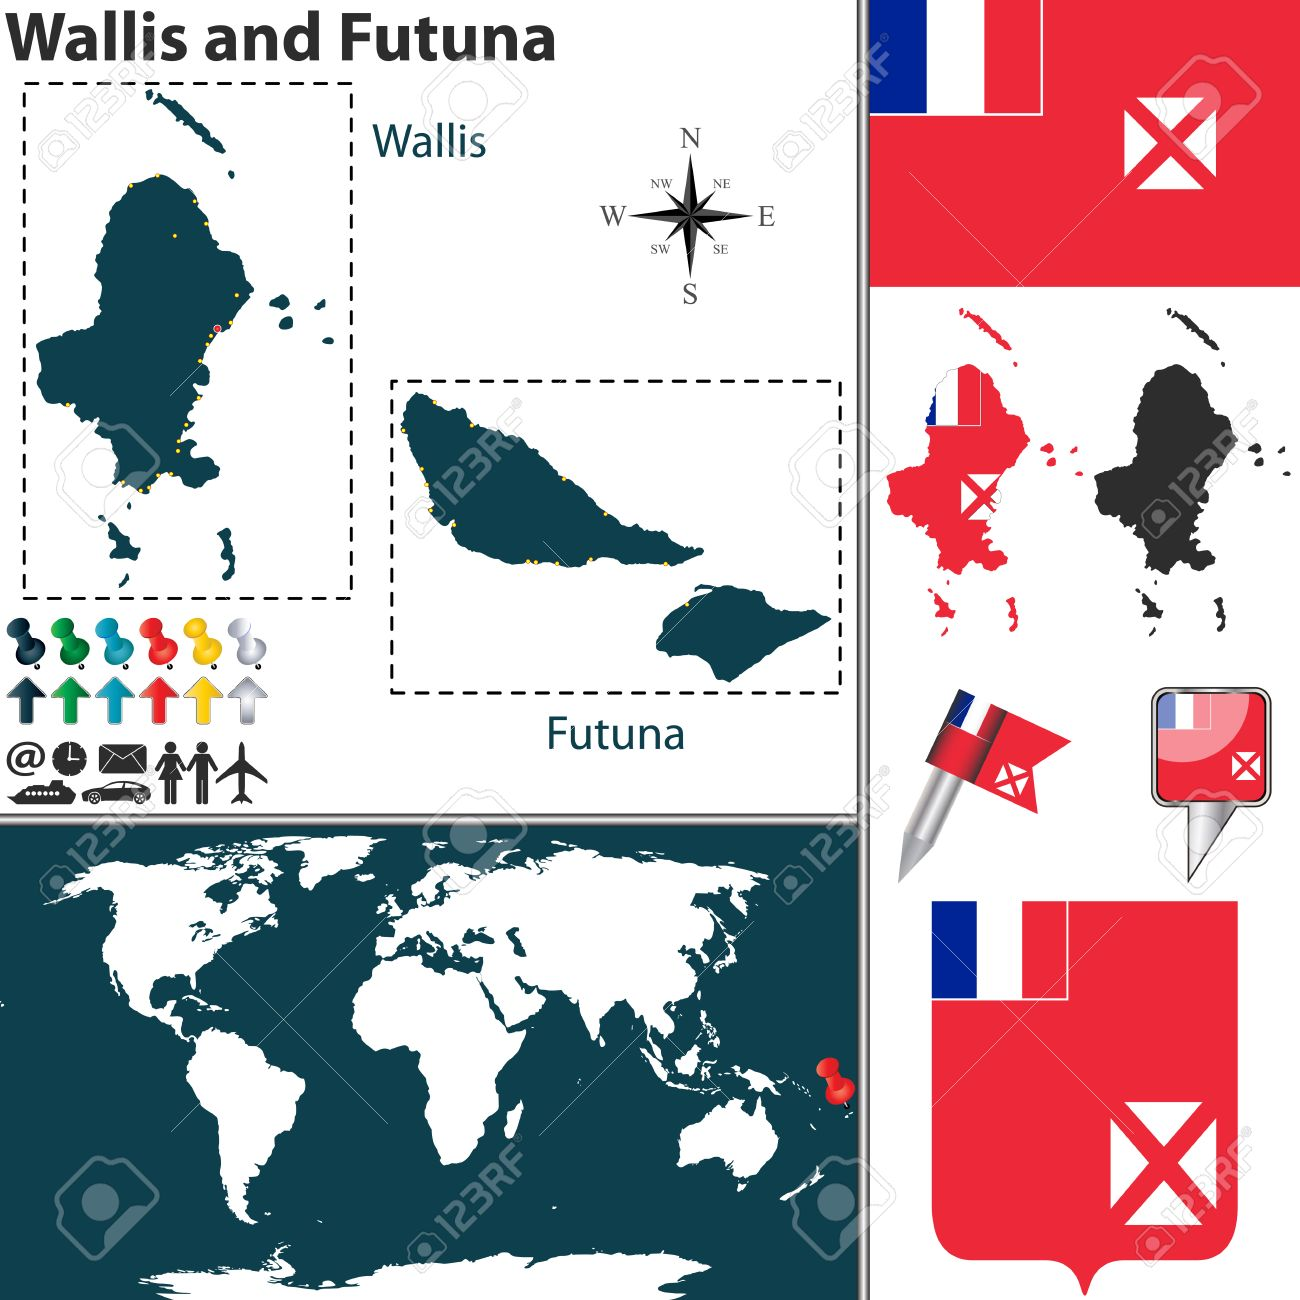 Vector Map Of Wallis And Futuna With Coat Of Arms And Location - Wallis and futuna map